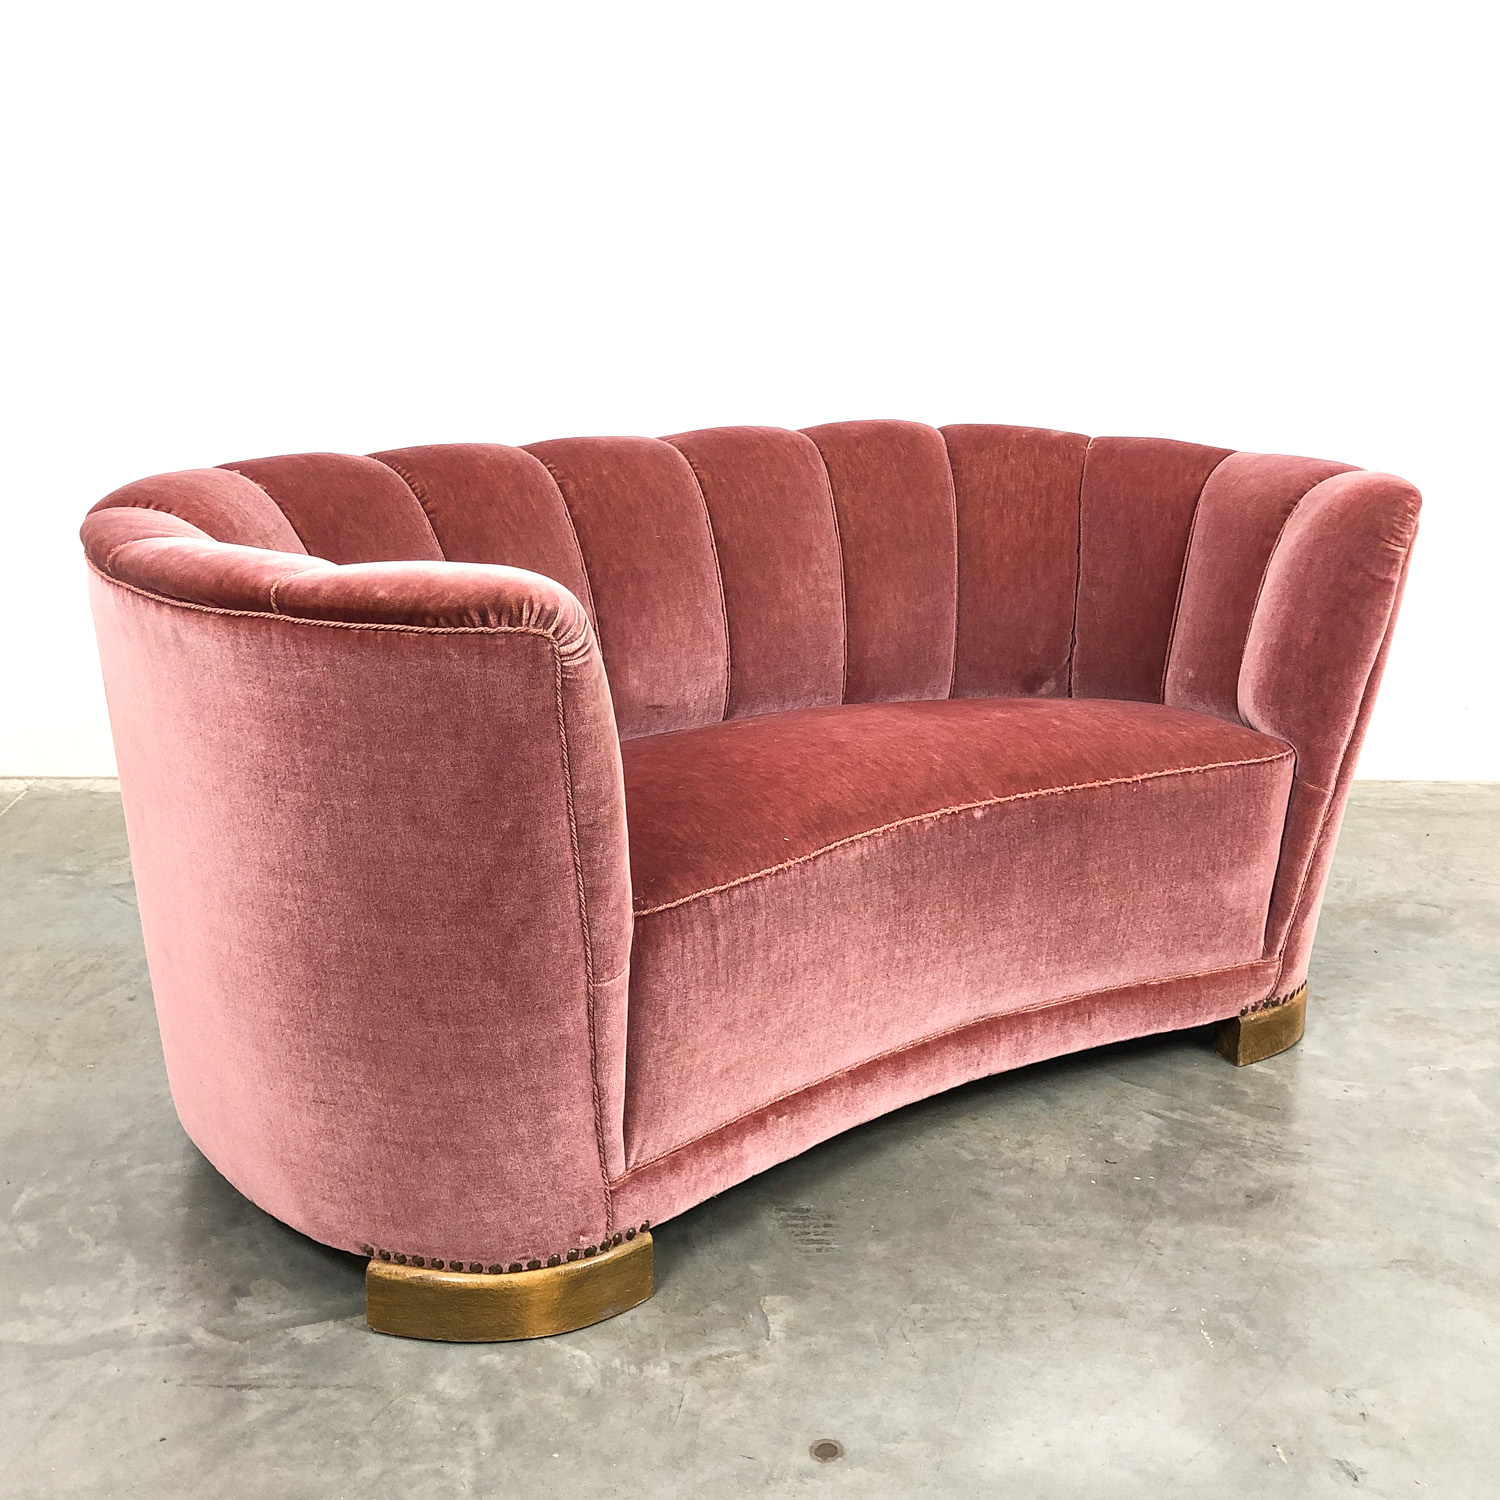 Vintage pink velvet two seater cocktail sofa